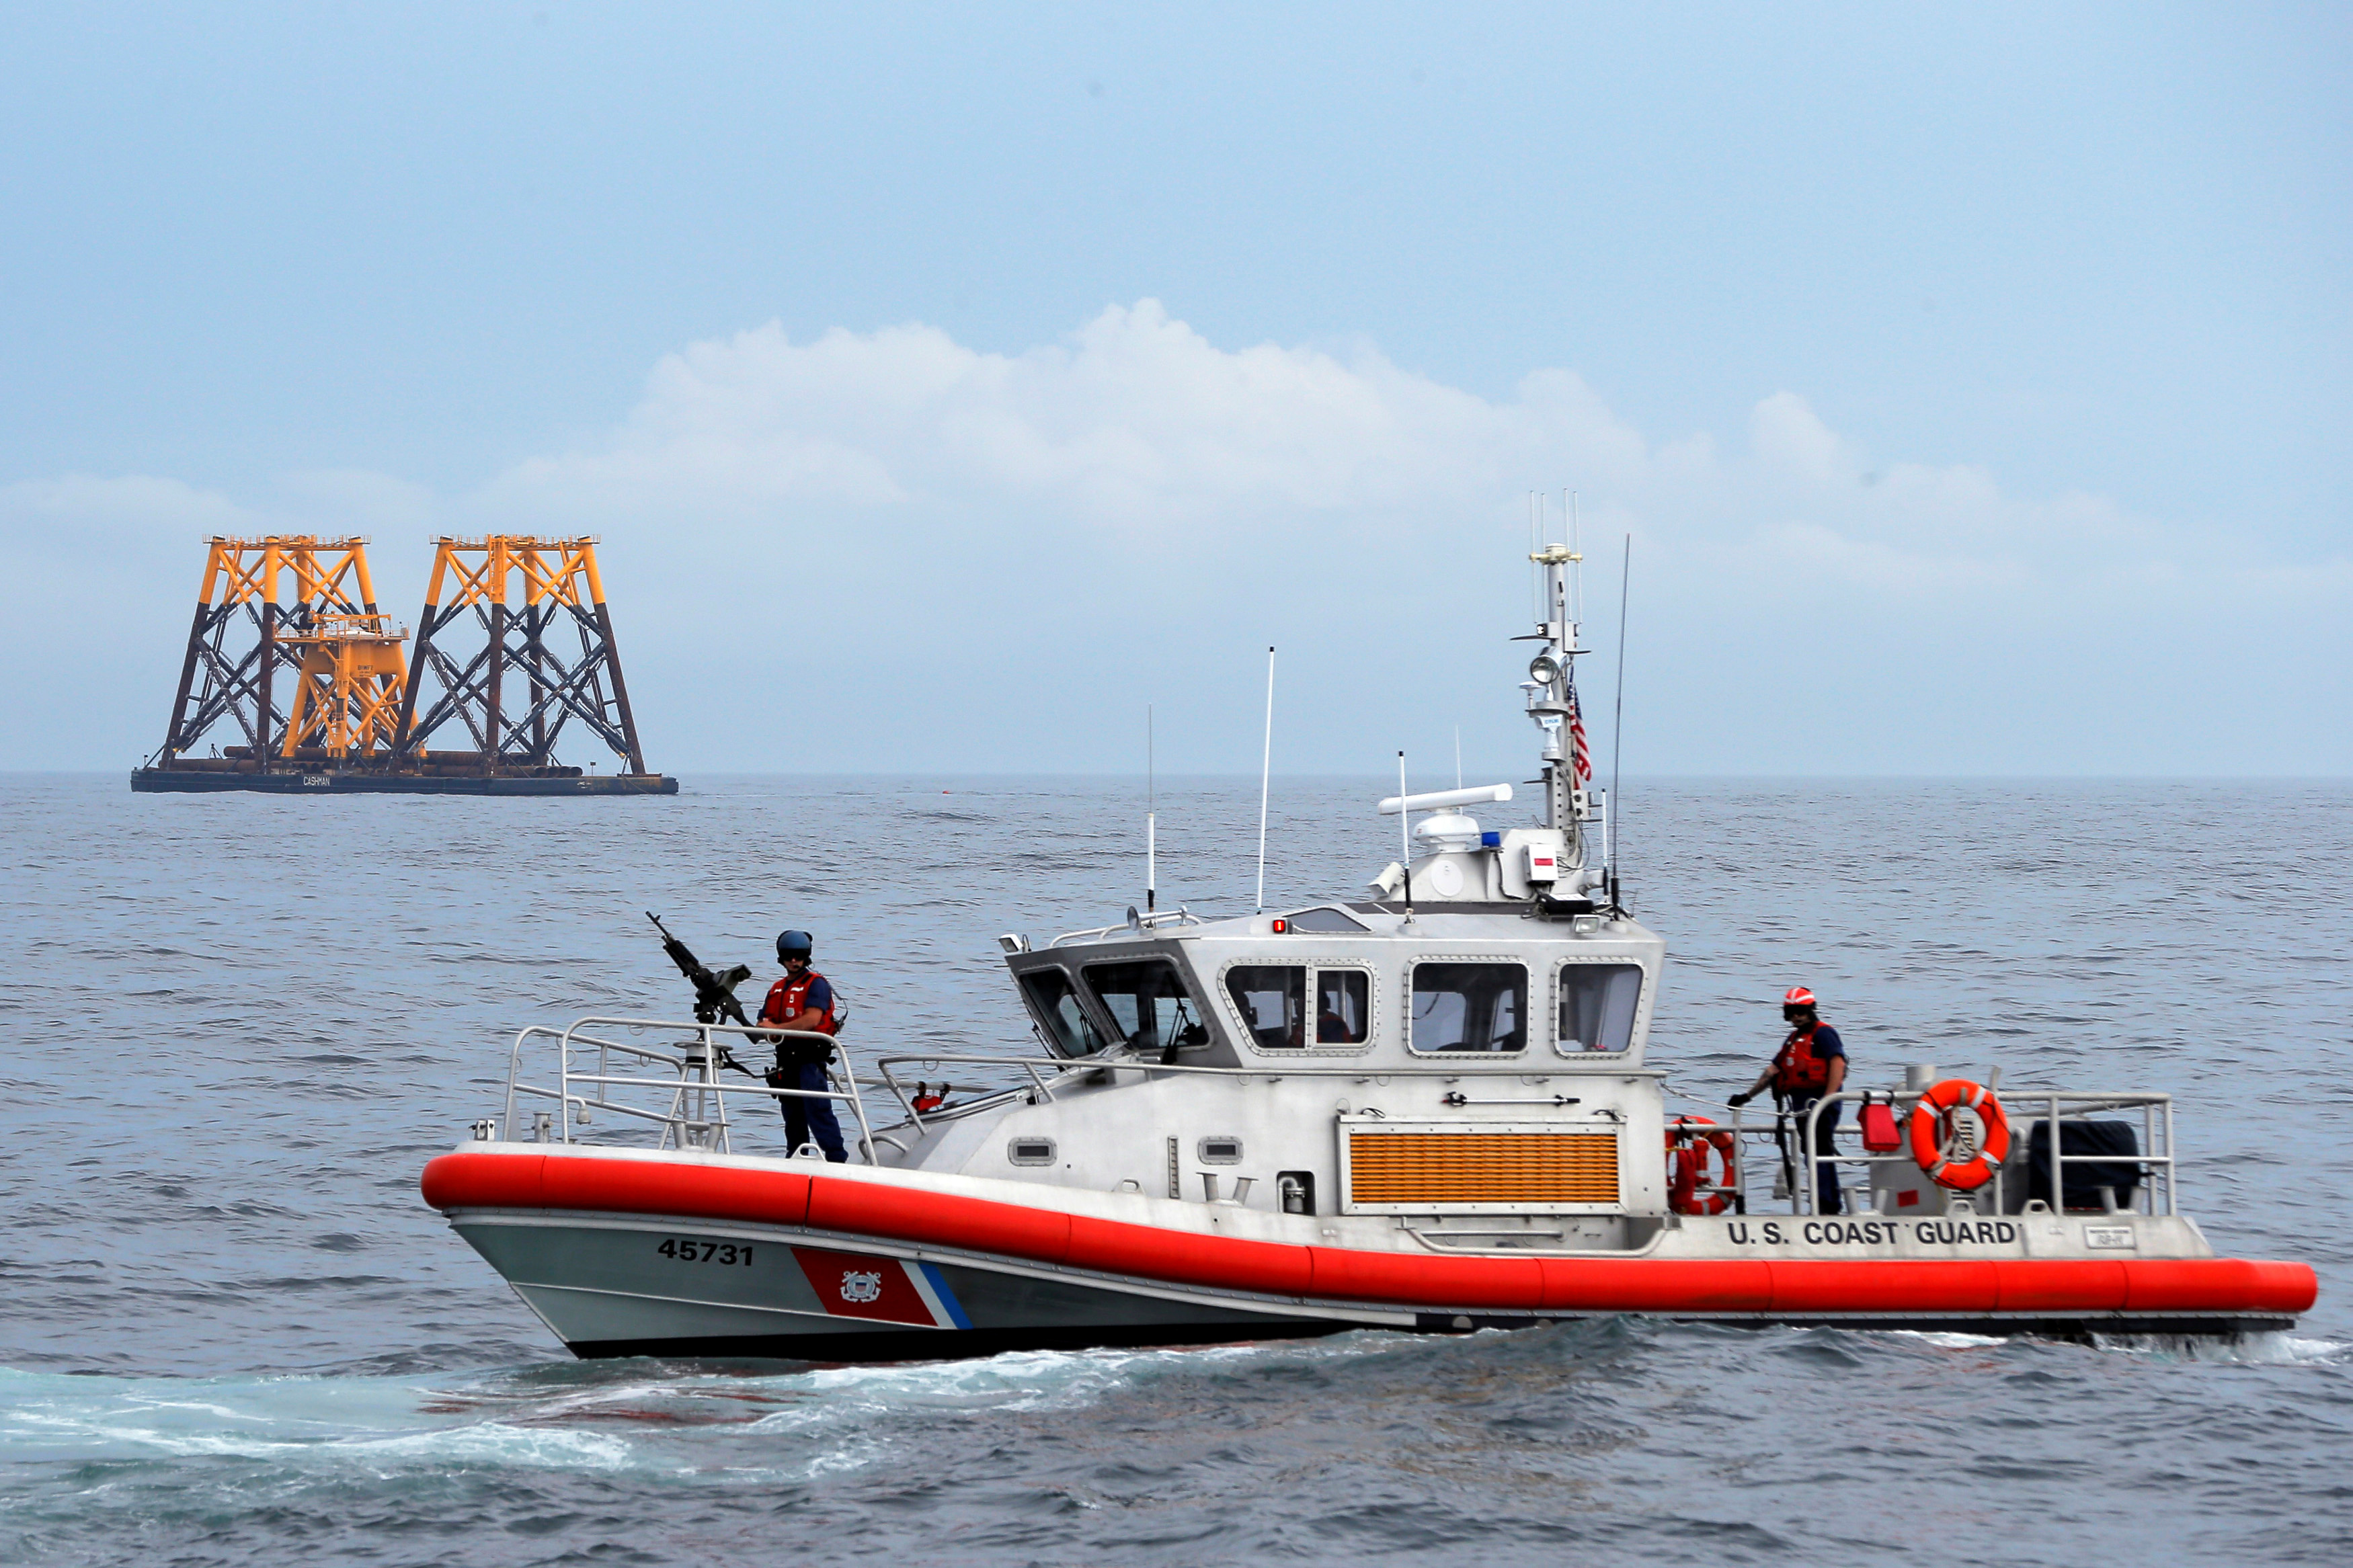 A U.S. Coast Guard patrol boat passes a barge carrying jacket supports and platforms for wind turbines in the waters of the Atlantic Ocean off Block Island, Rhode Island July 27, 2015.       REUTERS/Brian Snyder/File Photo